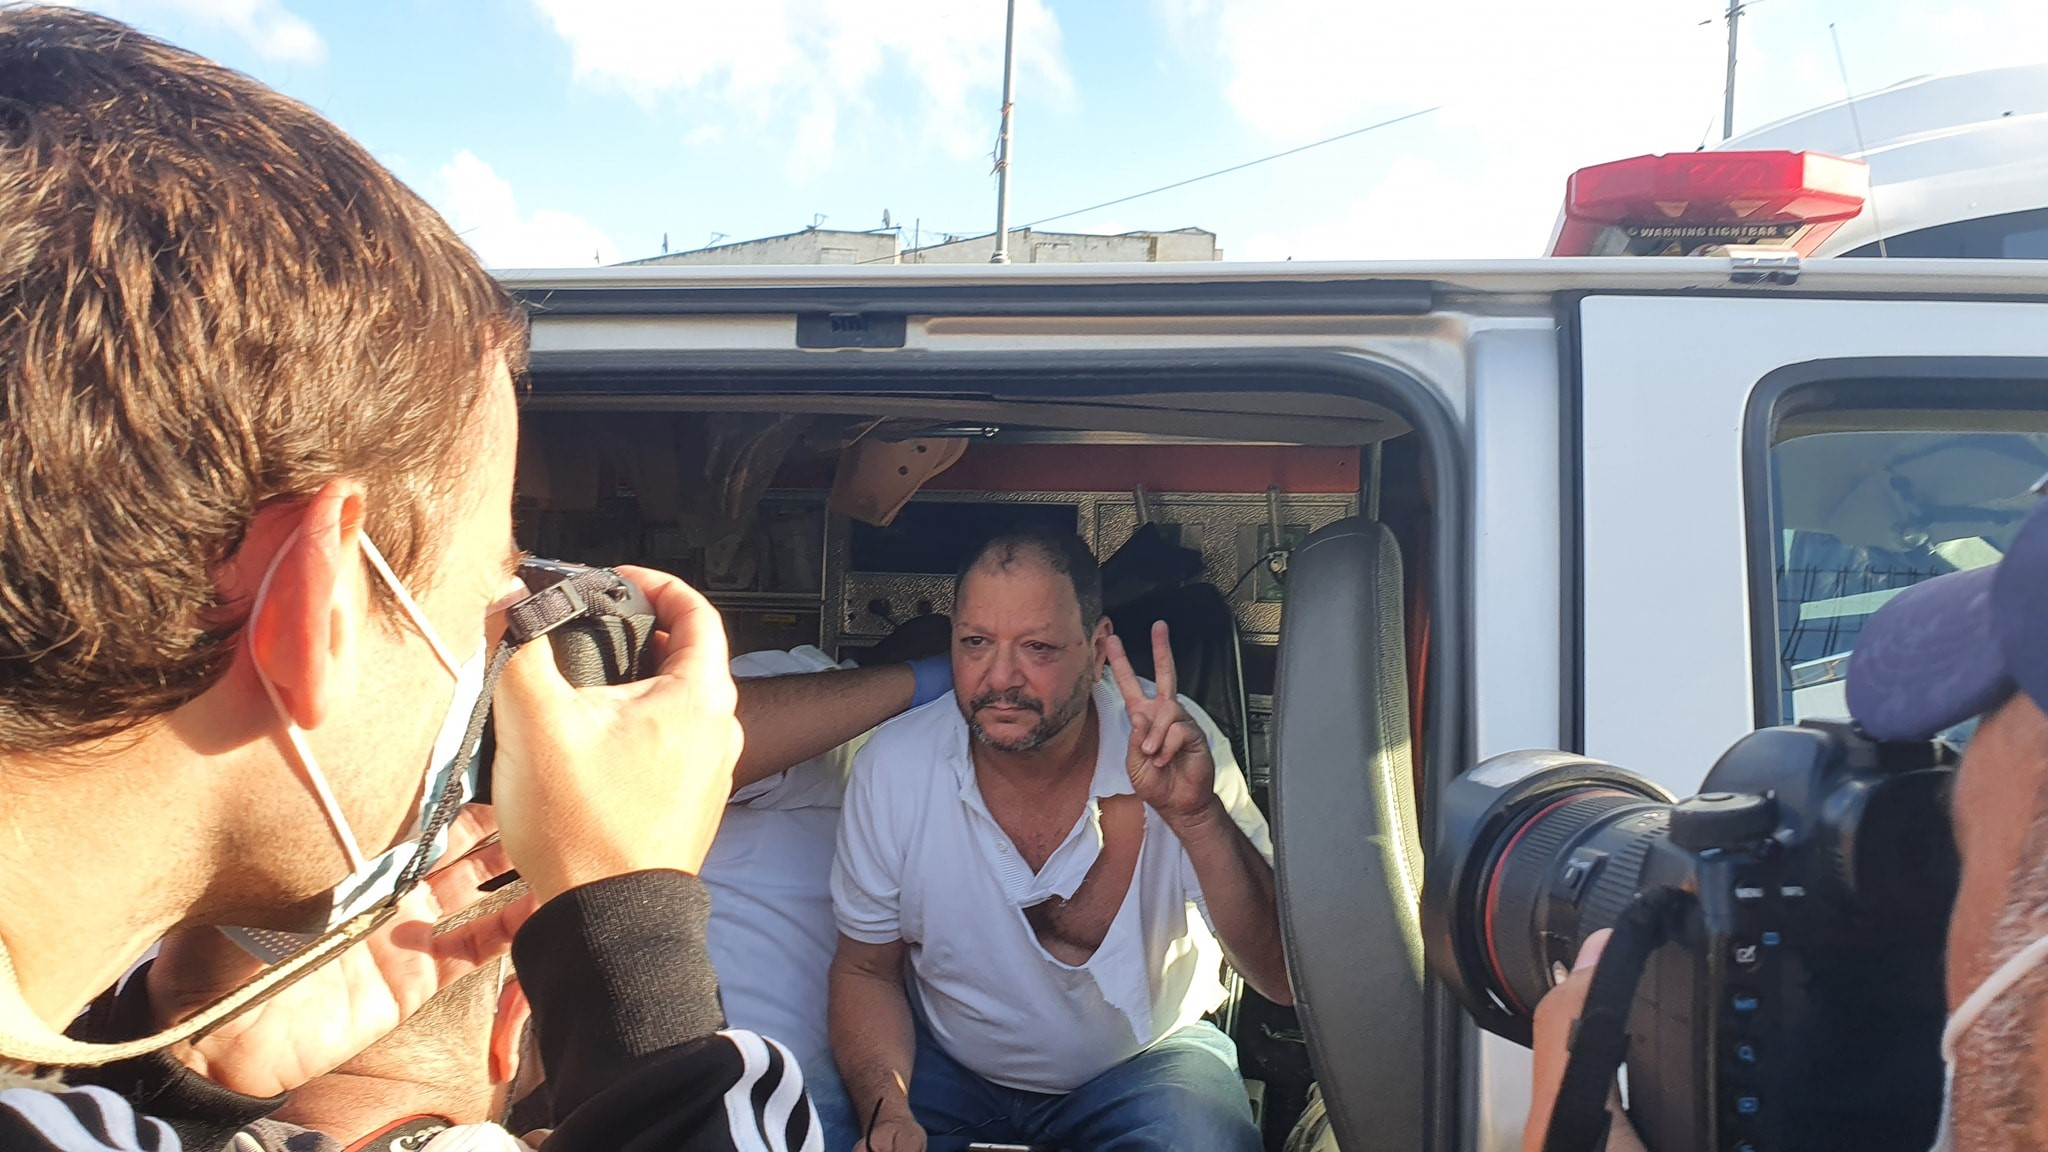 Joint List MK Ofer Cassif (Hadash) receives first aid treatment in an ambulance after being beaten by police officers during a protest in occupied East Jerusalem's Sheikh Jarrah neighborhood, Friday, April 9, 2021.